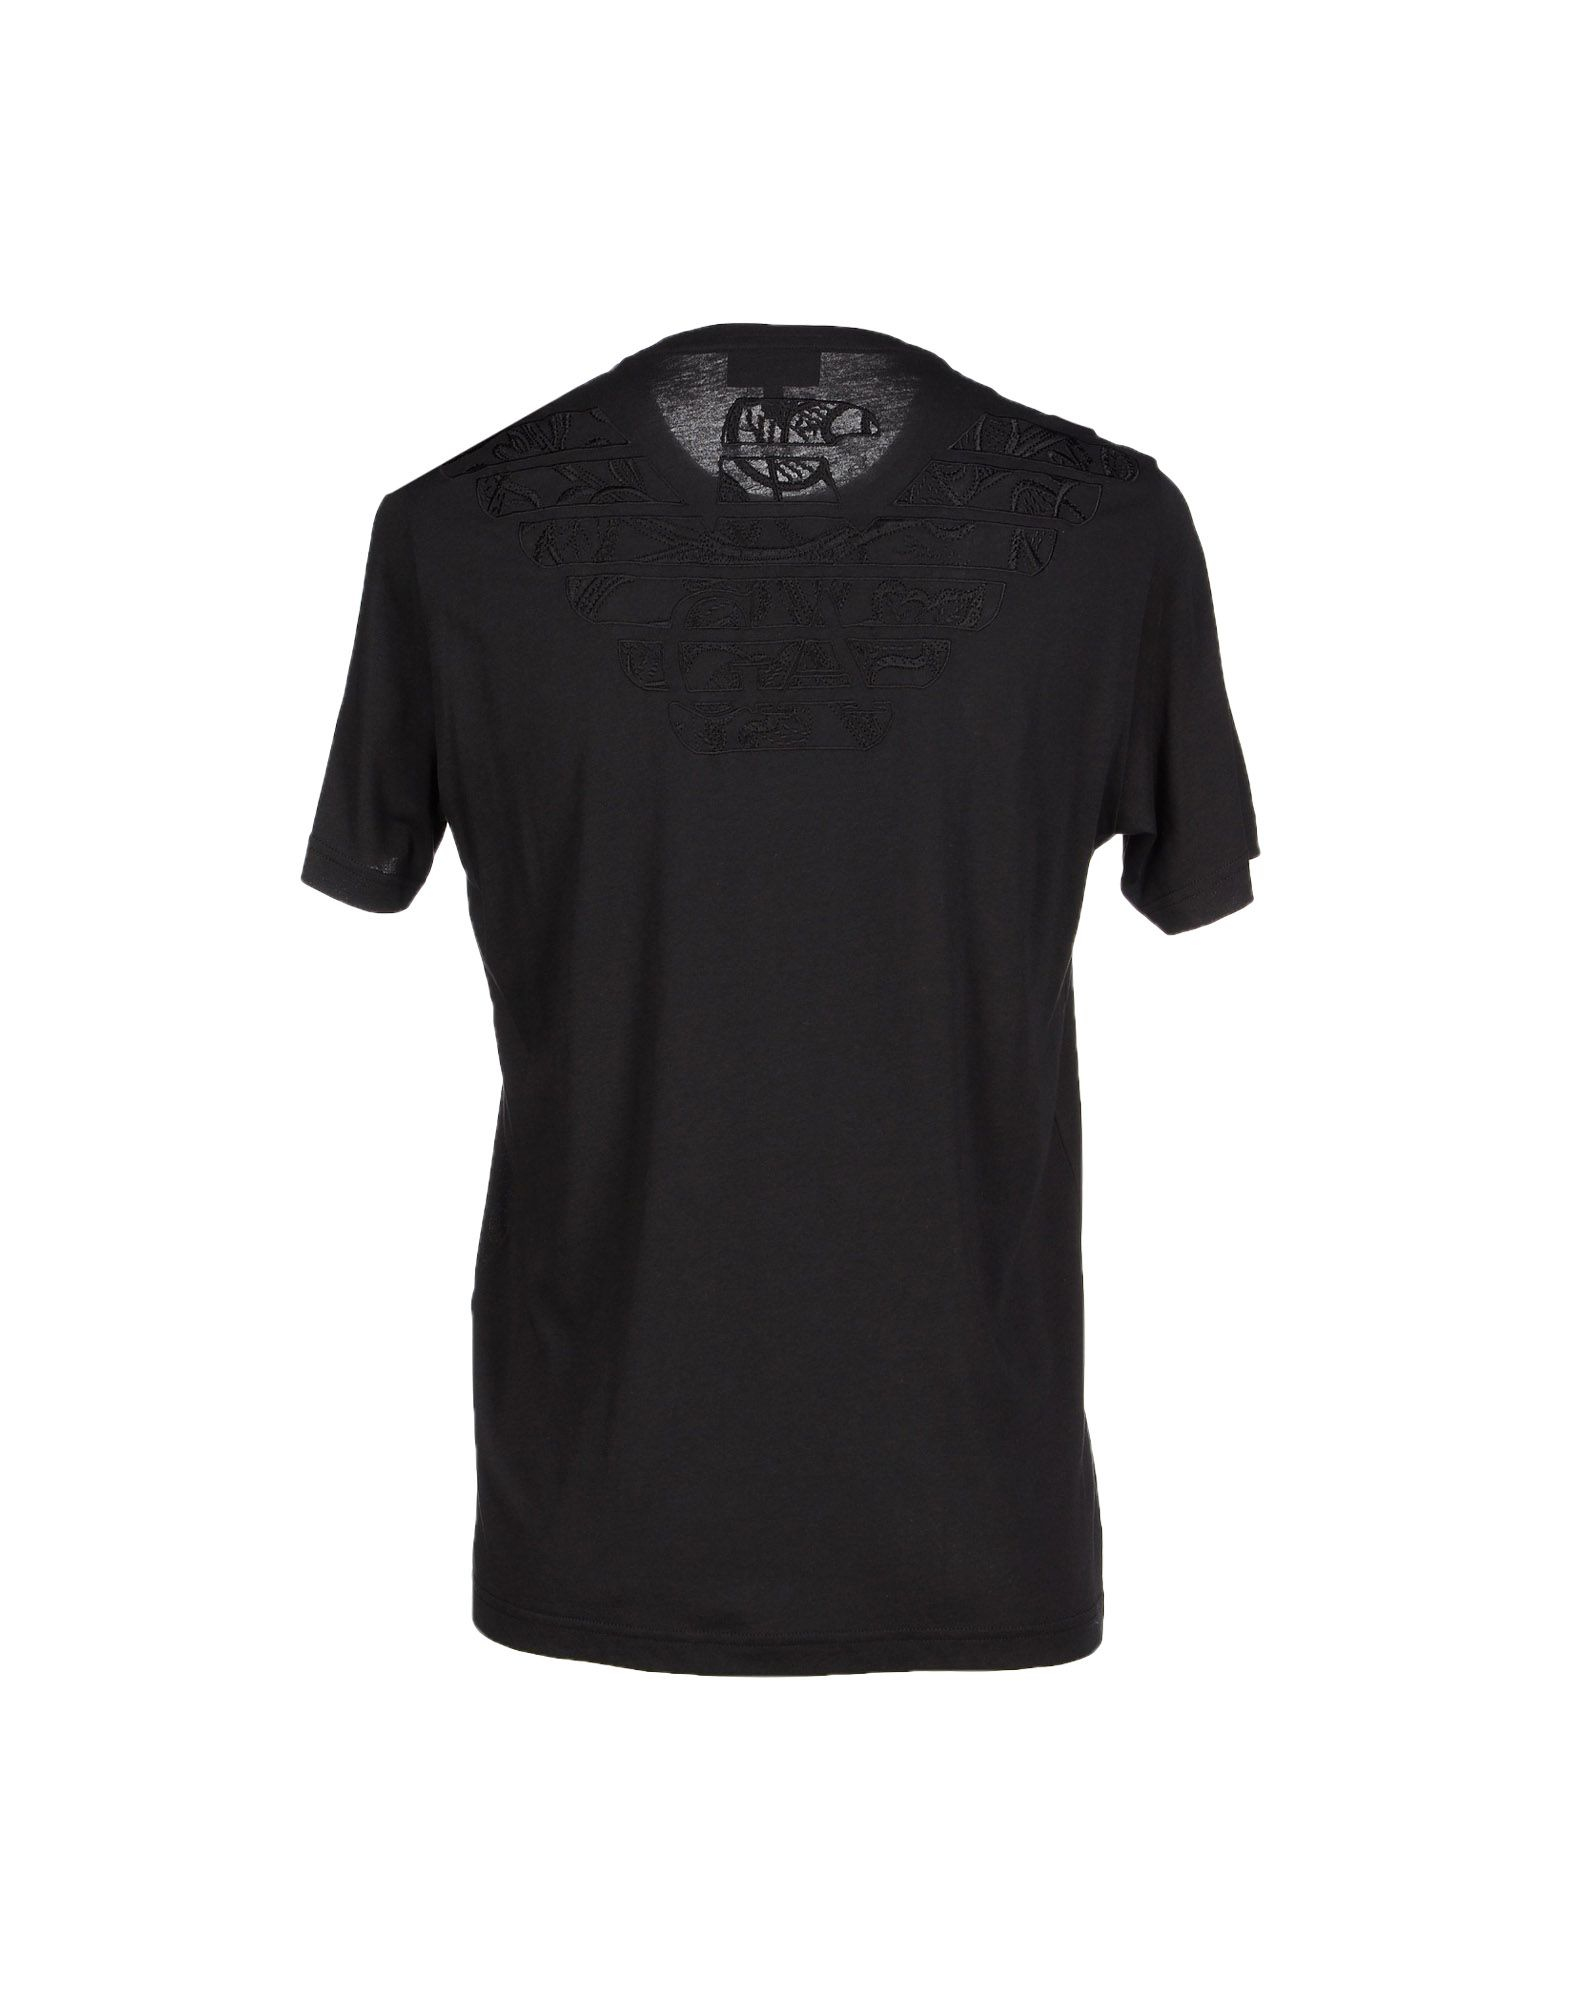 Emporio Armani T Shirt In Black For Men Save 17 Lyst